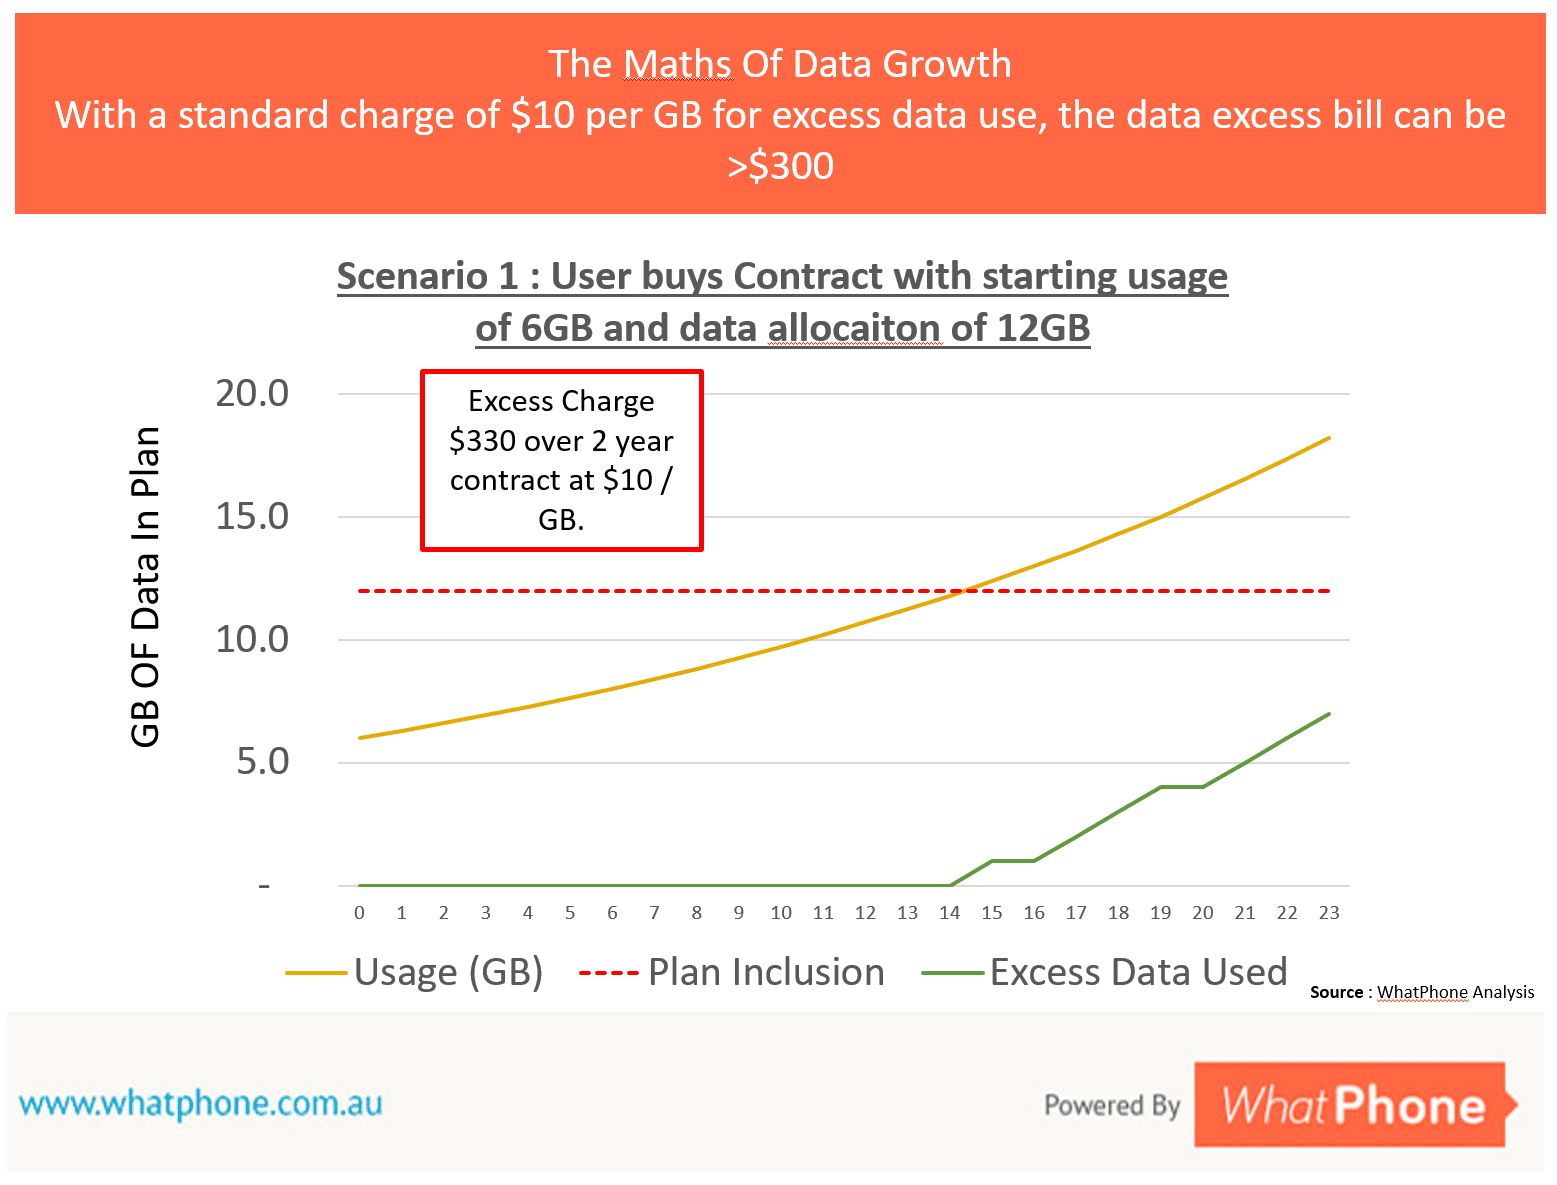 Imagine a scenario in which someone signs up to an unlimited plan with a data inclusion of 6GB per month. In total, over a 2 year contract, they will be charged $300 for extra data.